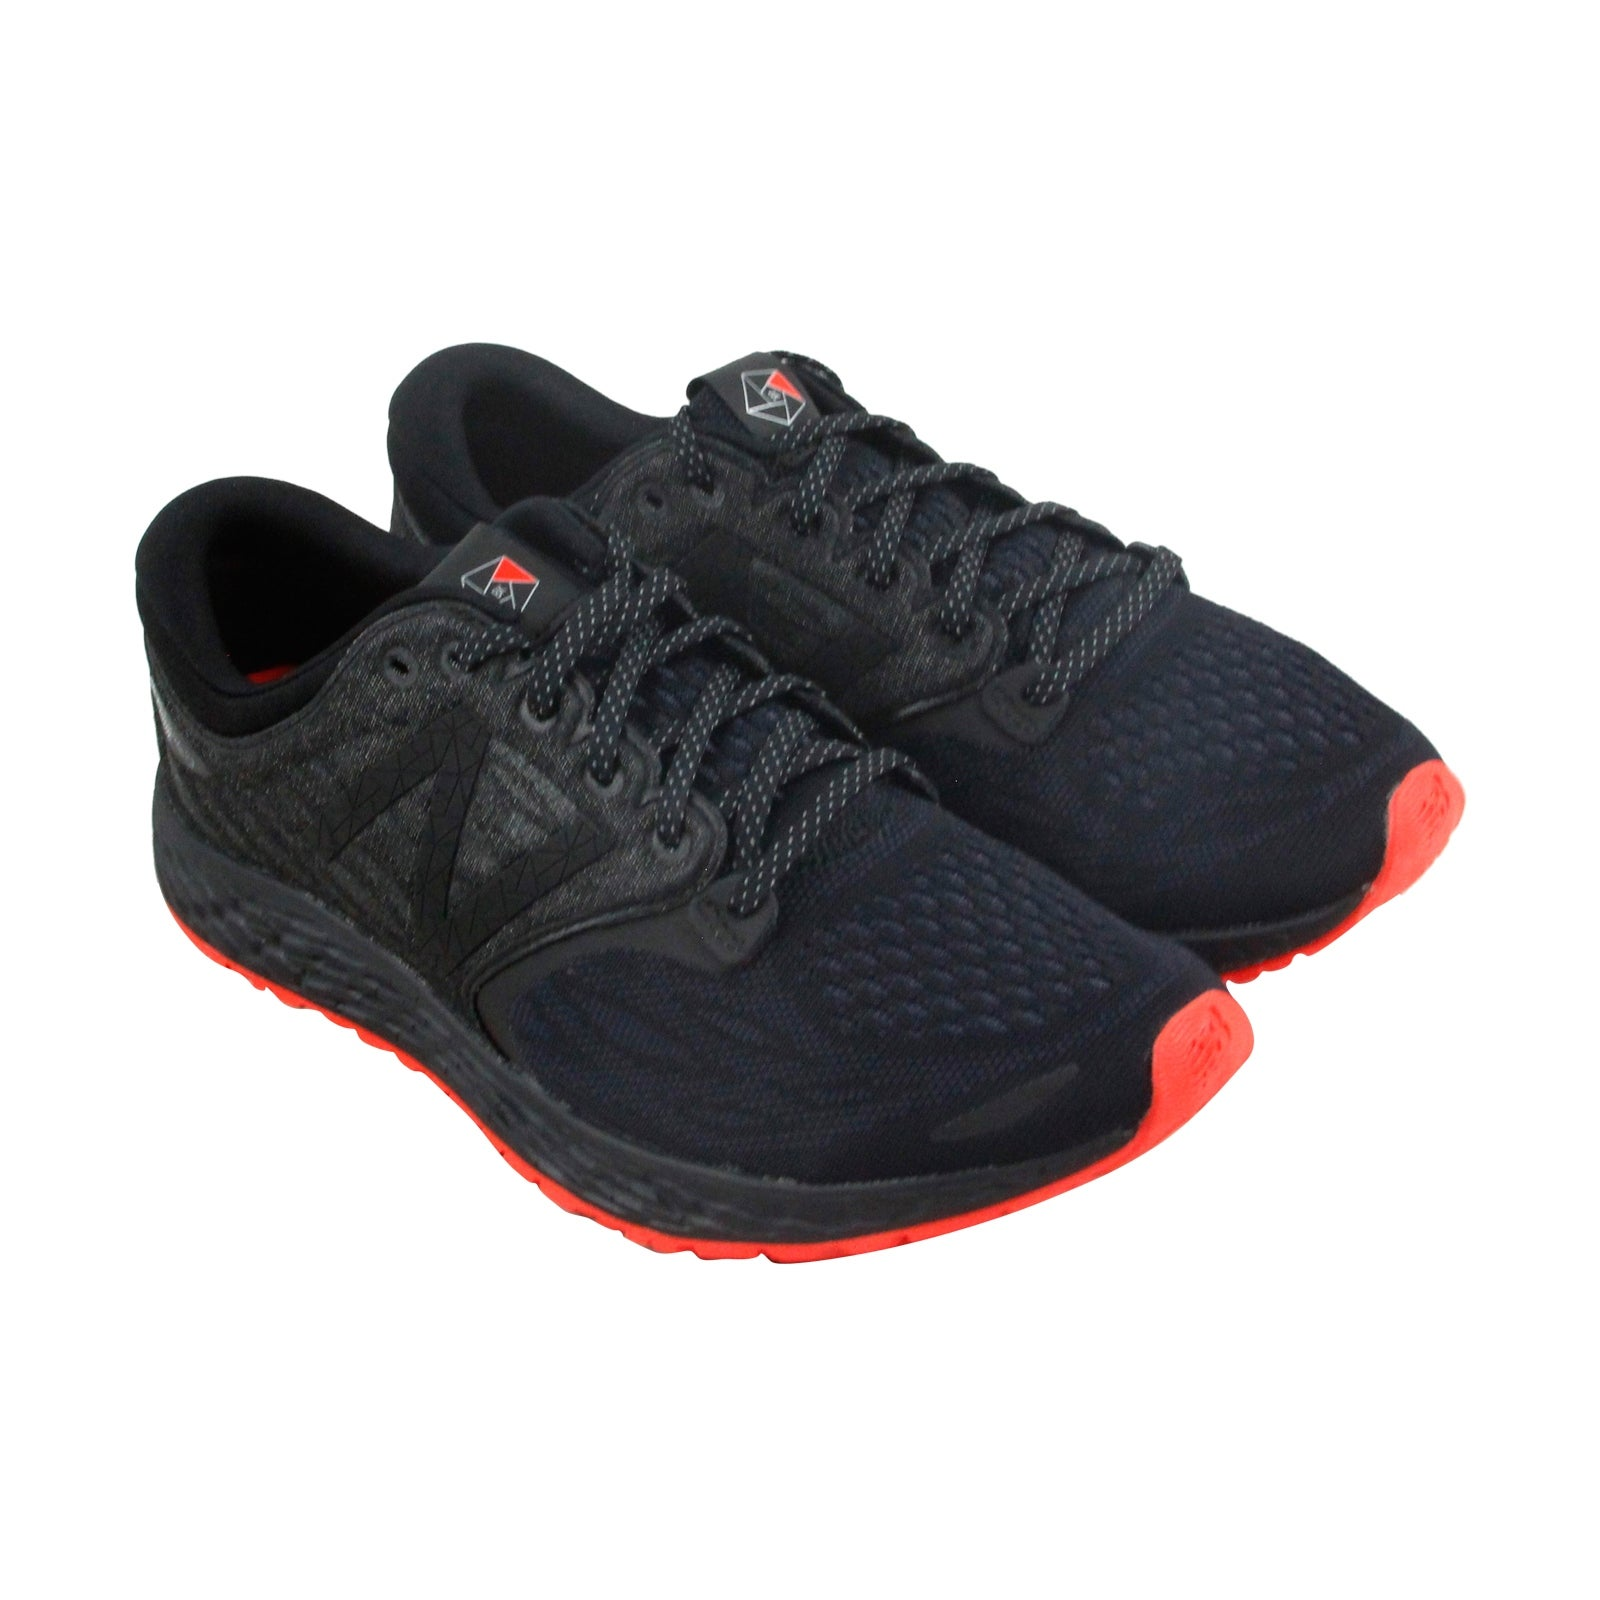 11a1f2588f New Balance Course Womens Black Textile Athletic Lace Up Running Shoes